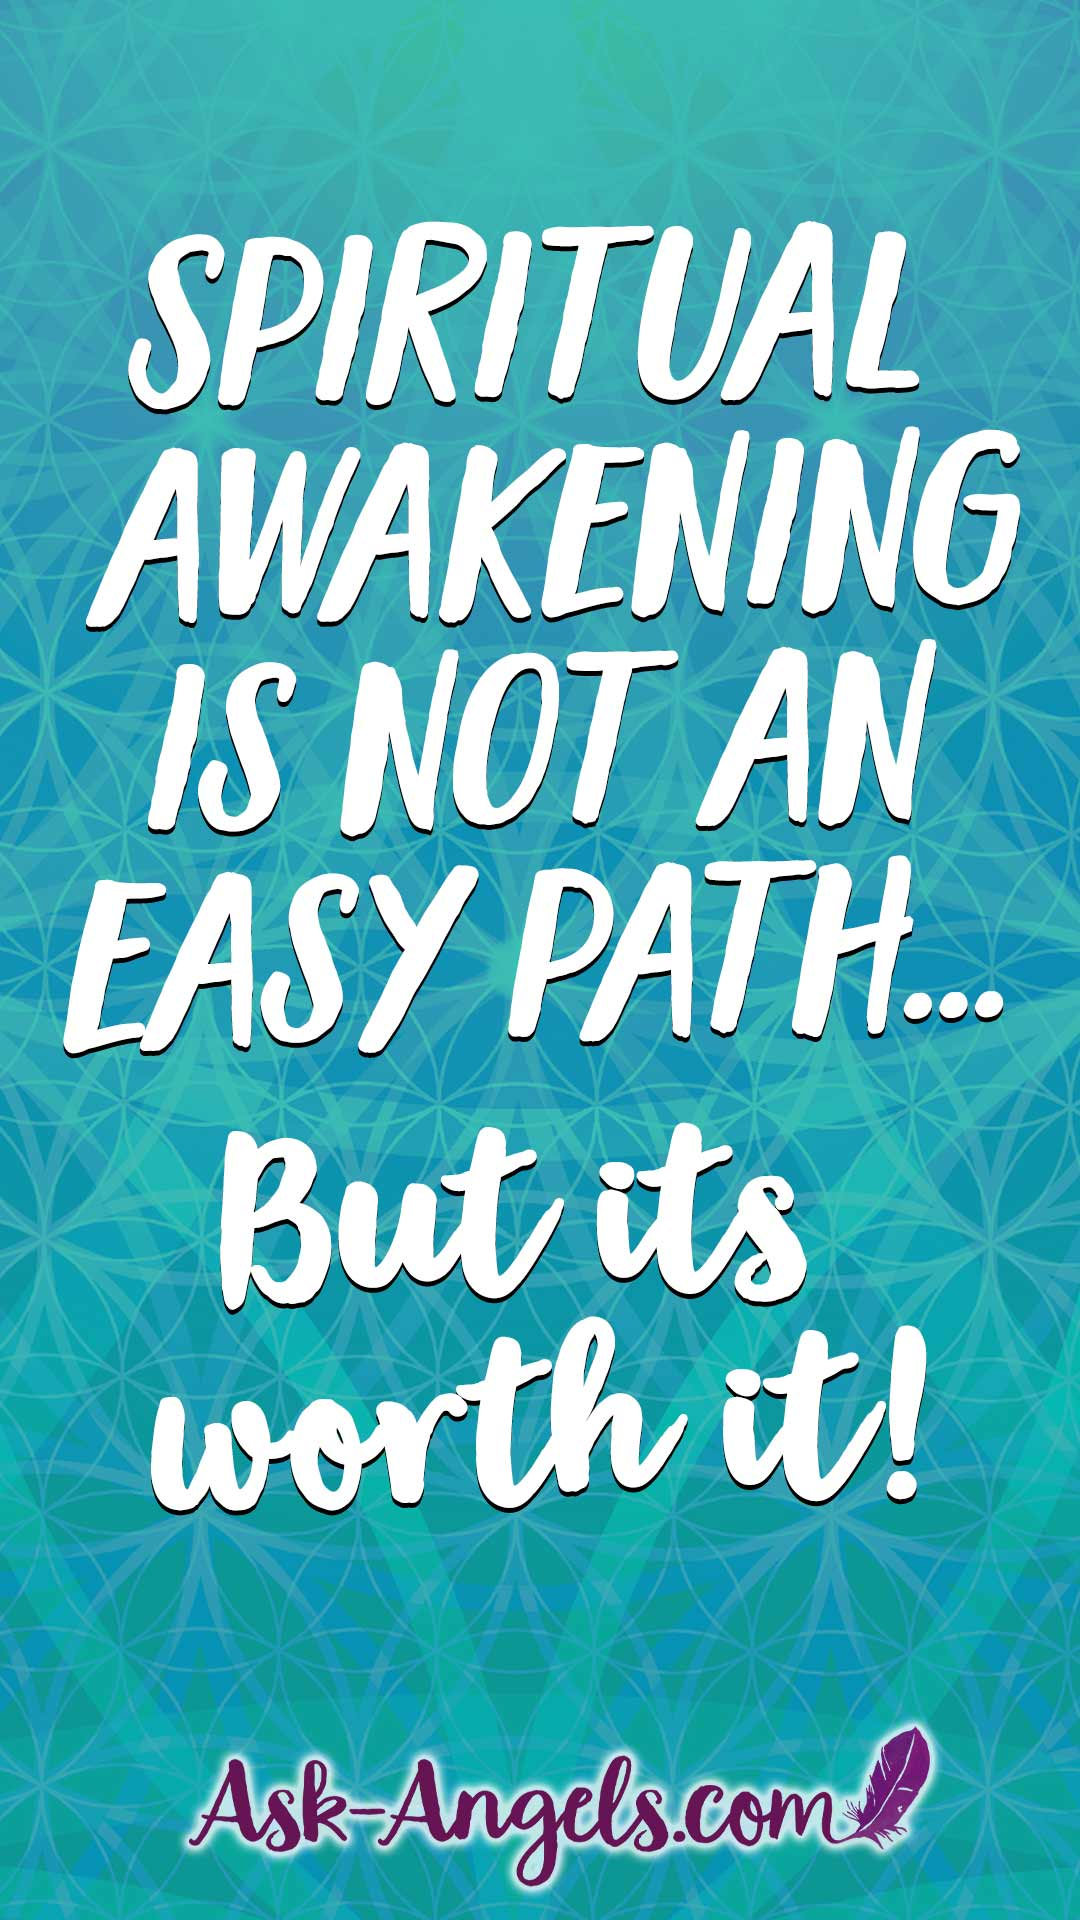 Spiritual Awakening is not an easy path... But its worth it!